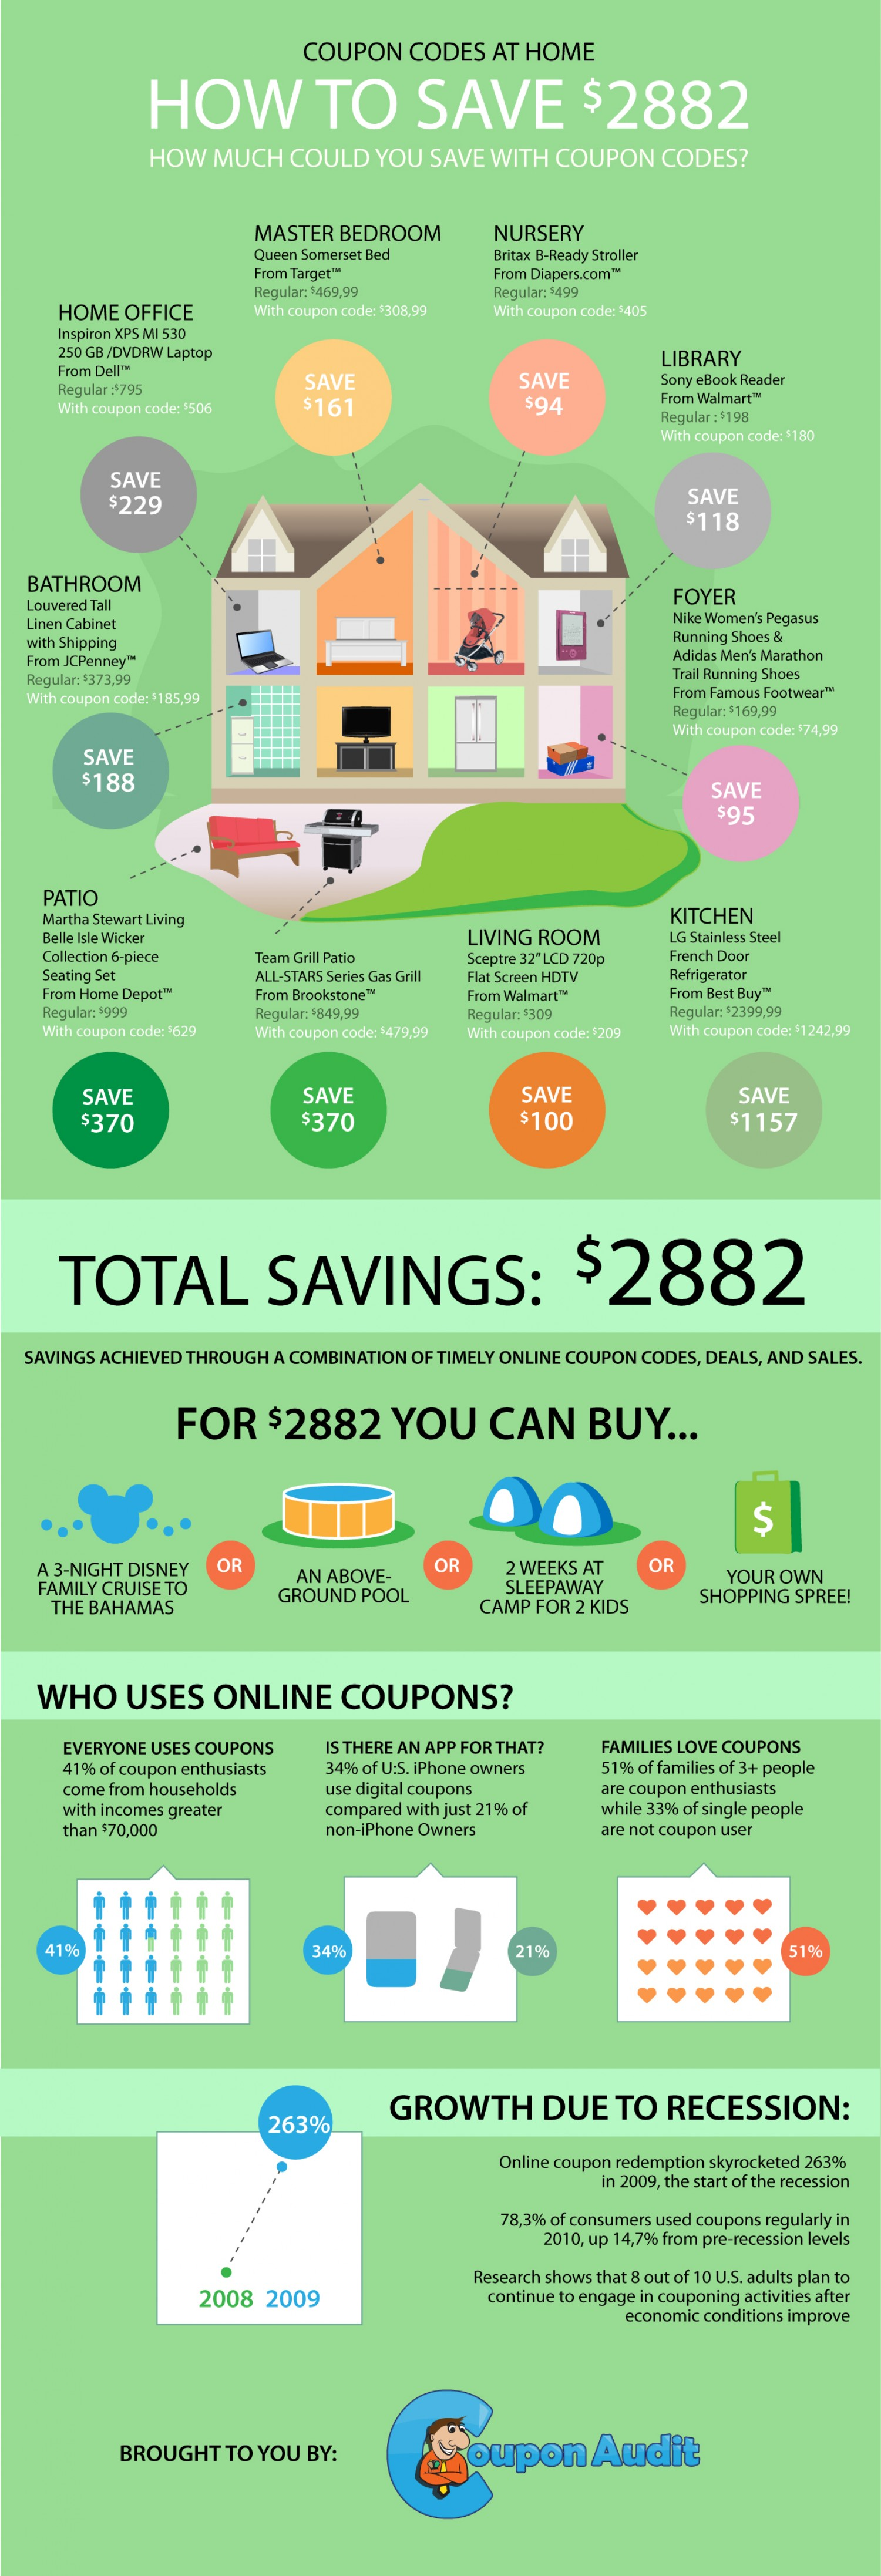 How To Save $2882 By Using Coupons?